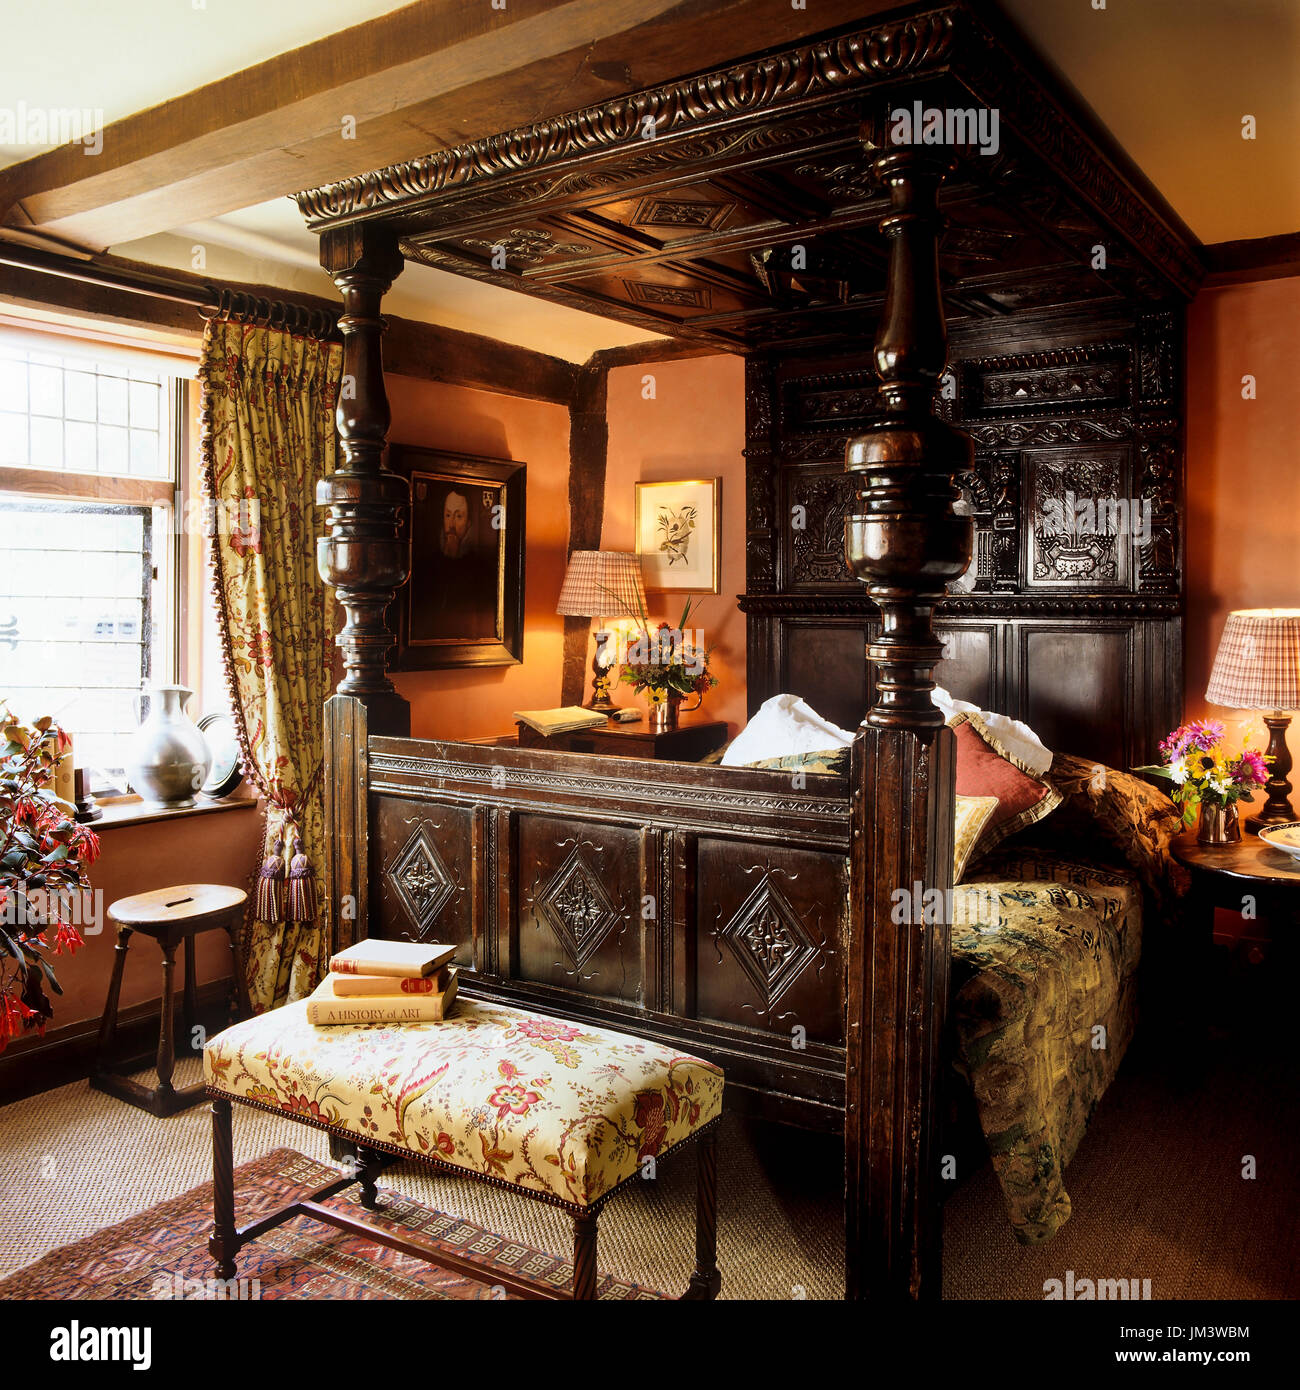 Victorian Bedroom With Wooden Four Poster Bed Stock Photo Alamy